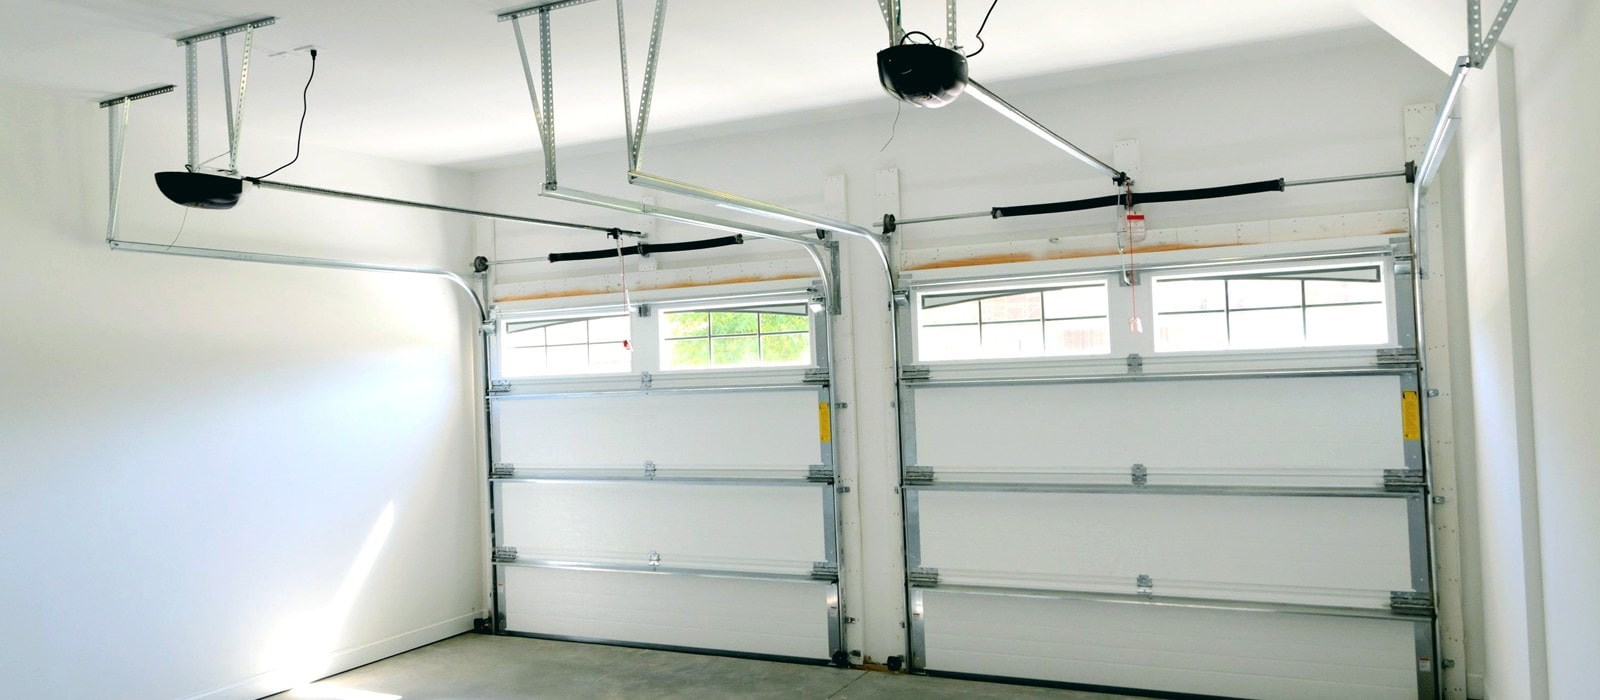 24 Hour  Garage Door Repair Service  Emergency Services in Malibu CA